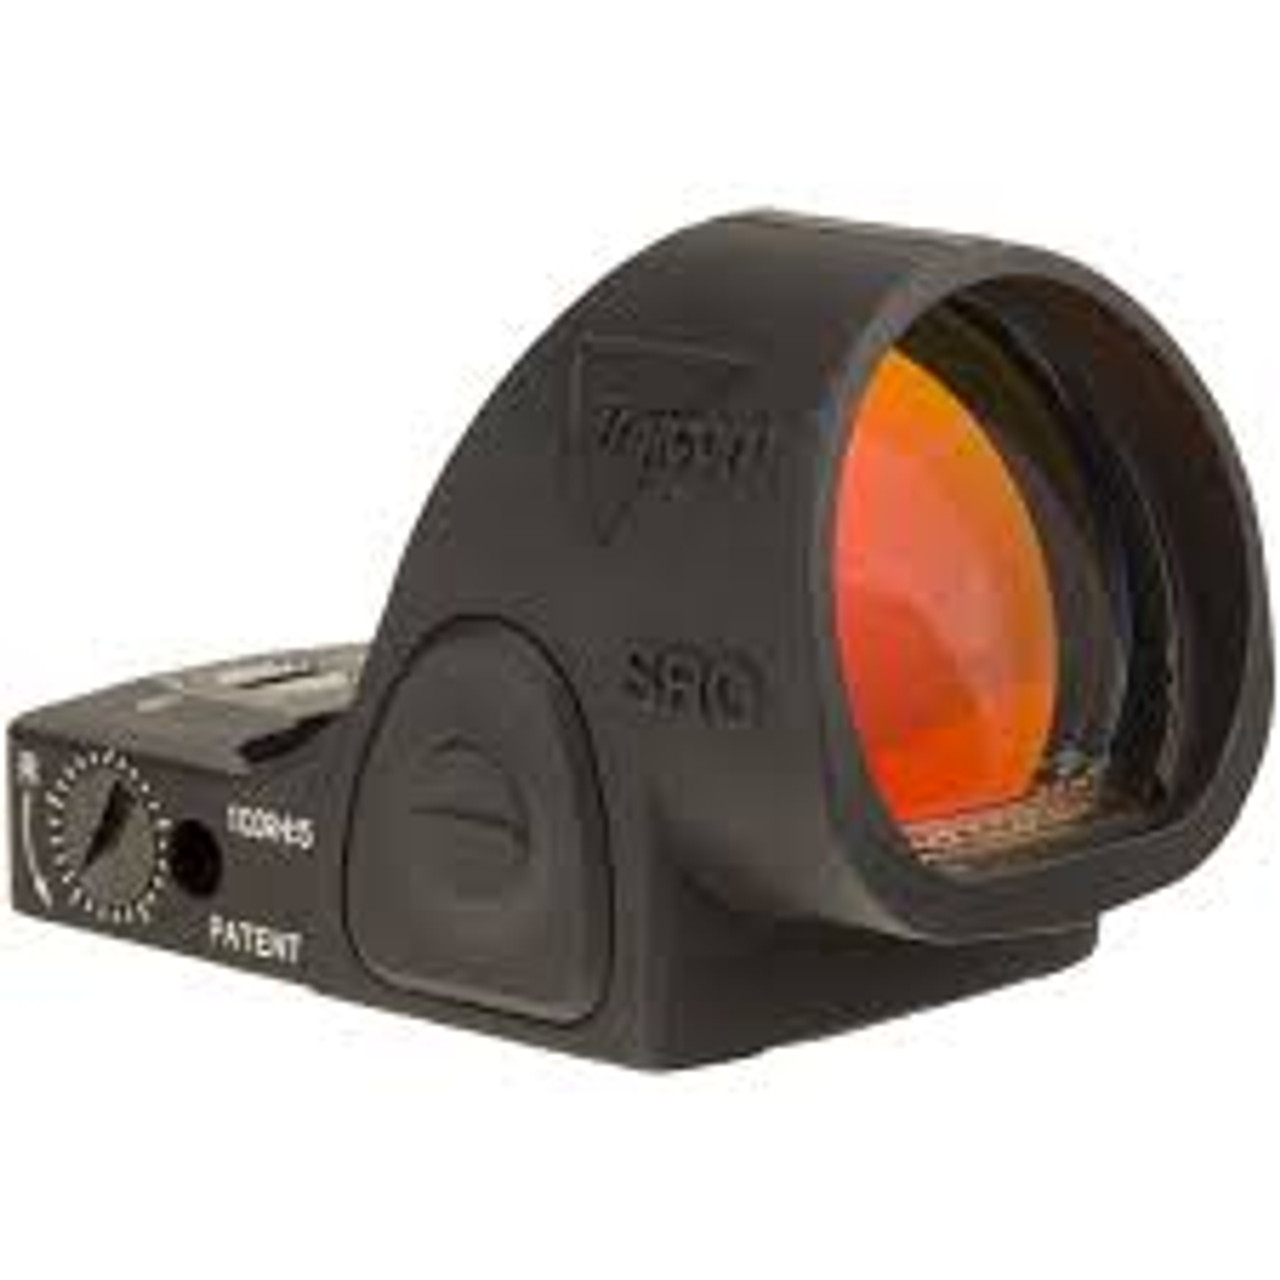 Trijicon SRO® Red Dot Sight 5.0 MOA Red Dot, Adjustable LED